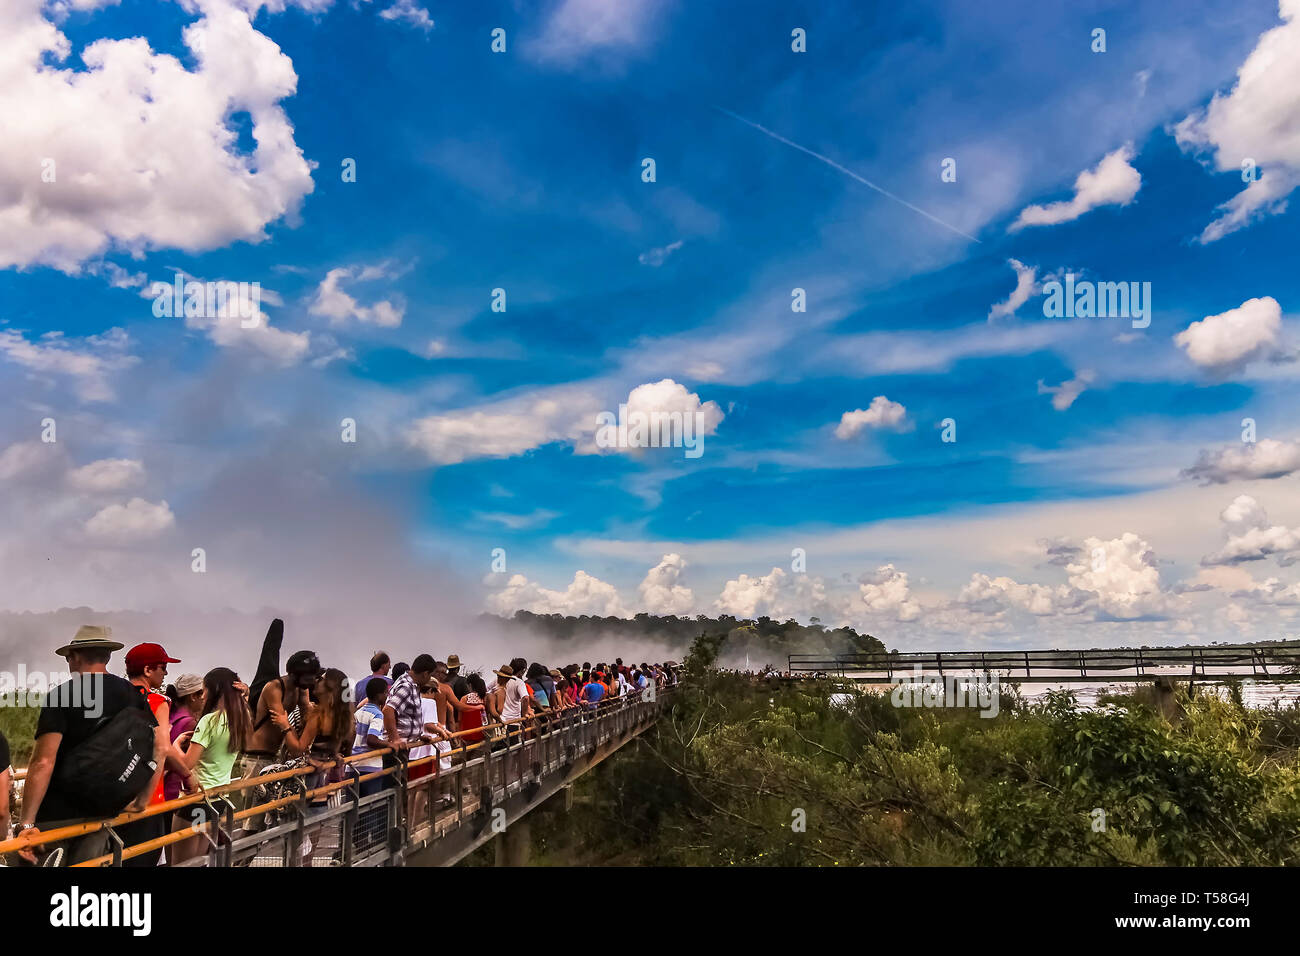 Misiones Province, Argentina - Jan 2015: Long queue of tourists on the metal walkway towards the cliff of the Devils Throat at Iquazu Falls - Stock Image